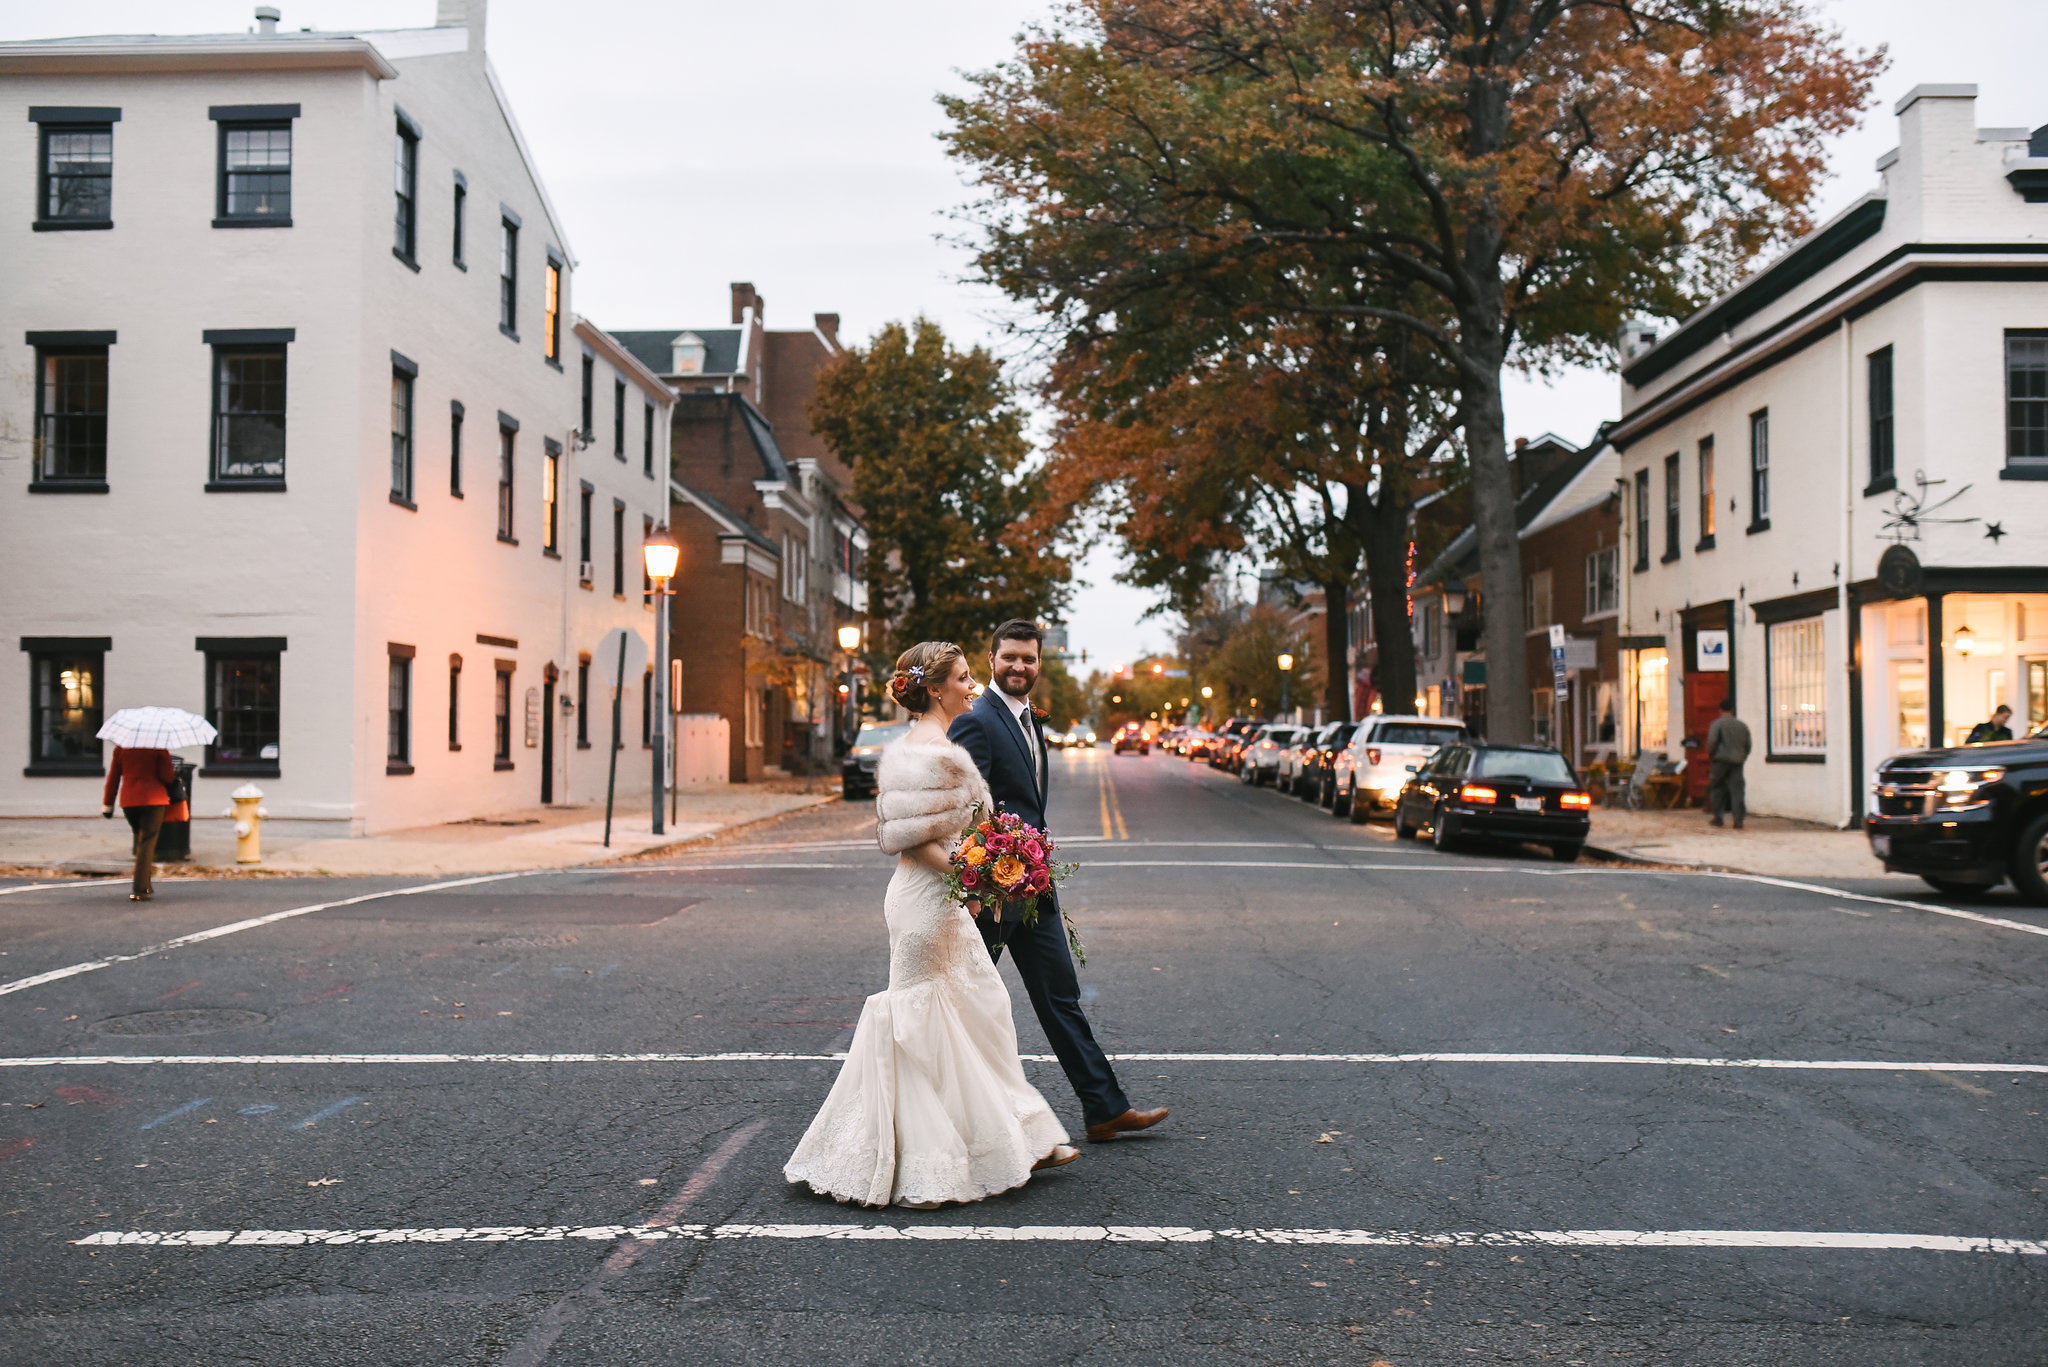 Alexandria, DC, Jos A. Bank Suit, Lian Carlo Wedding Dress, Lace Wedding Dress, Romantic, Vintage, Bride and Groom, Candid Photo, Old Town, The Enchanted Florist, Wedding Flowers, Evening Wedding